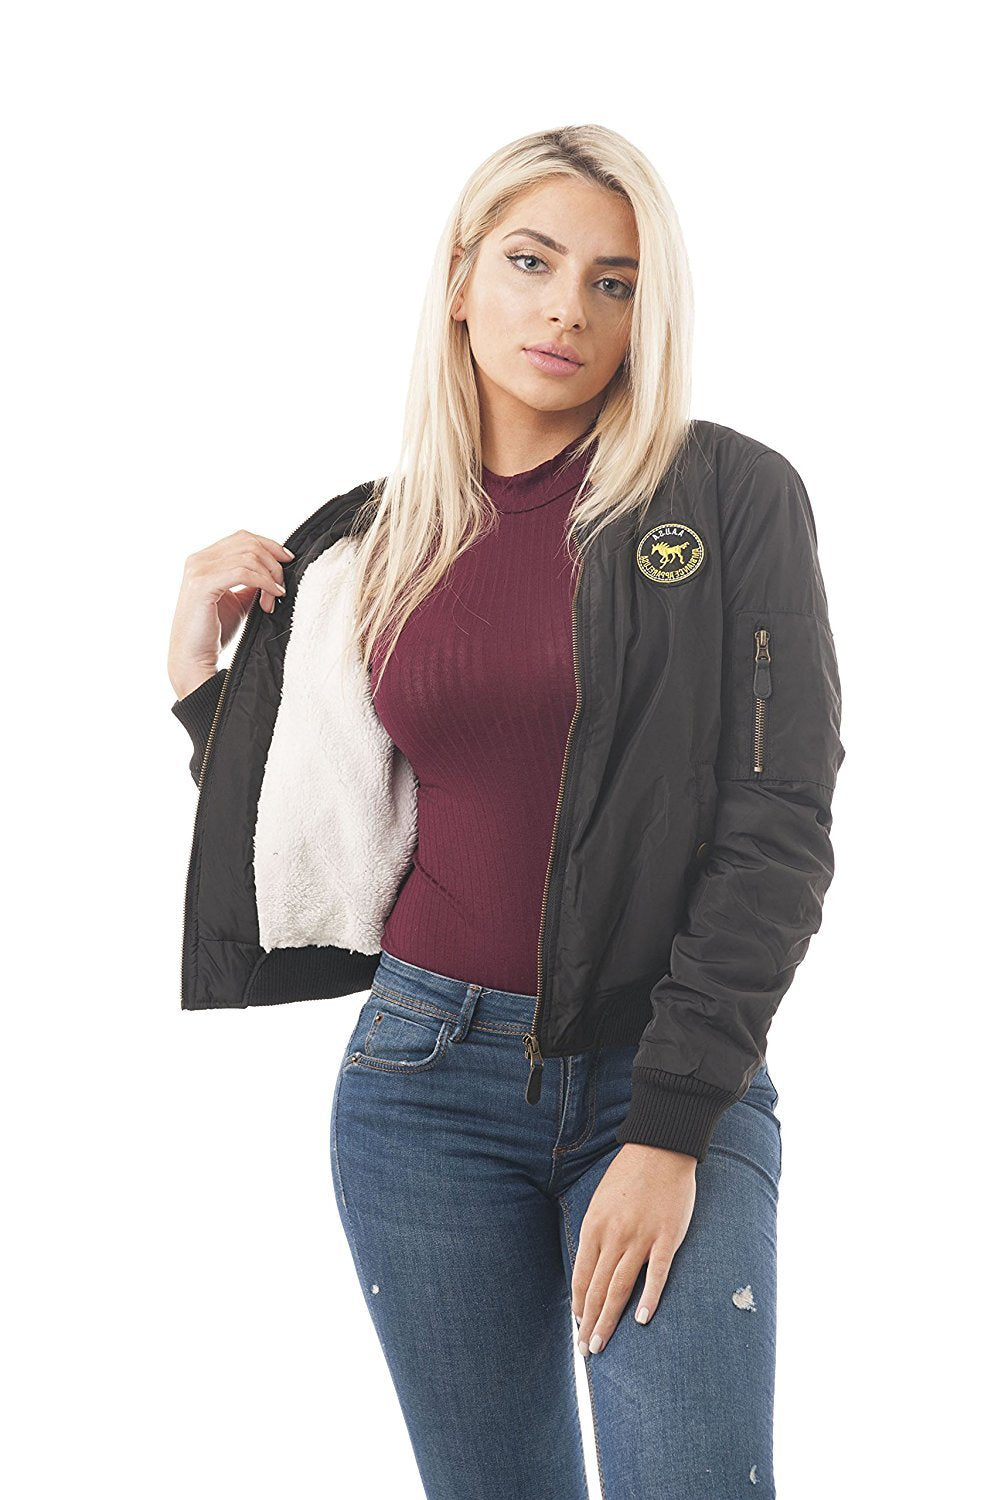 fur Lining Bomber Jacket with Patches